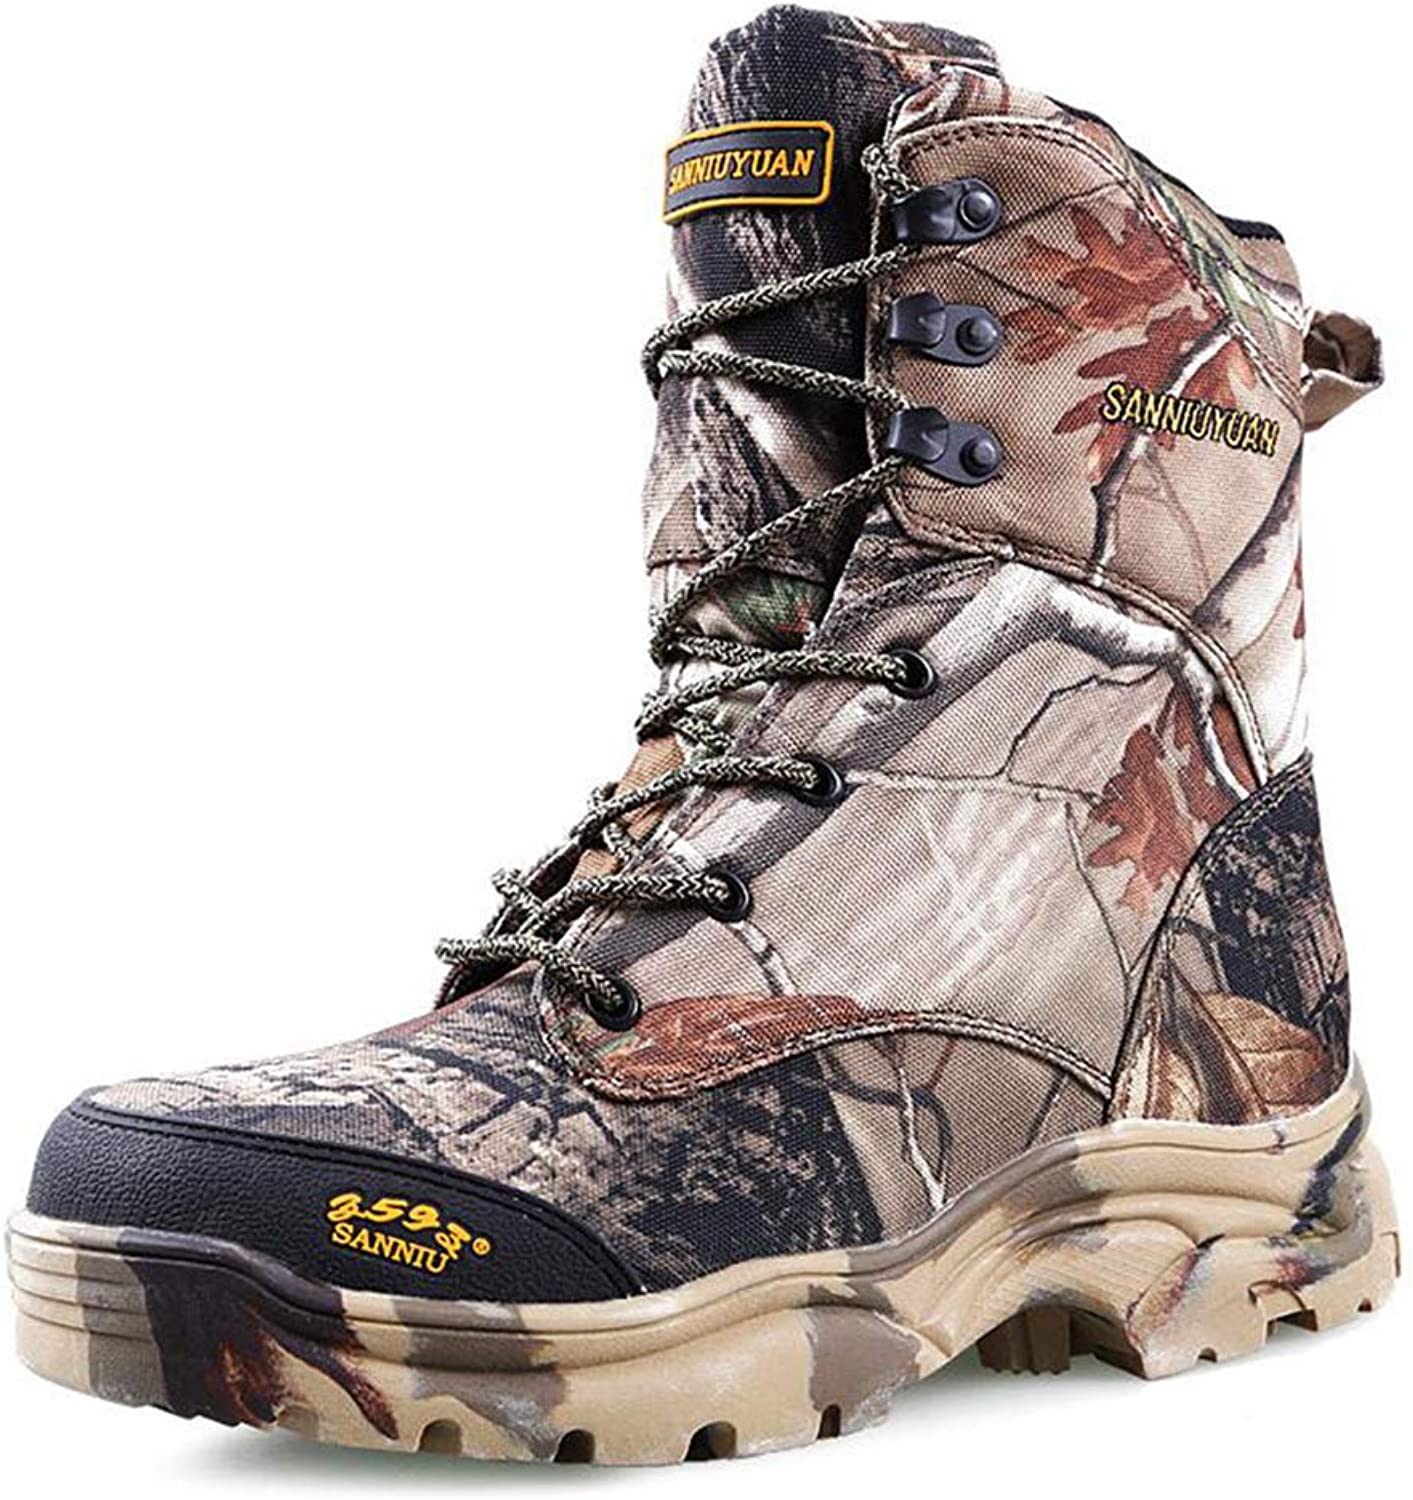 Bergort Hunting Boots Waterproof Outdoor Tactical Hunting Fishing Hiking shoes